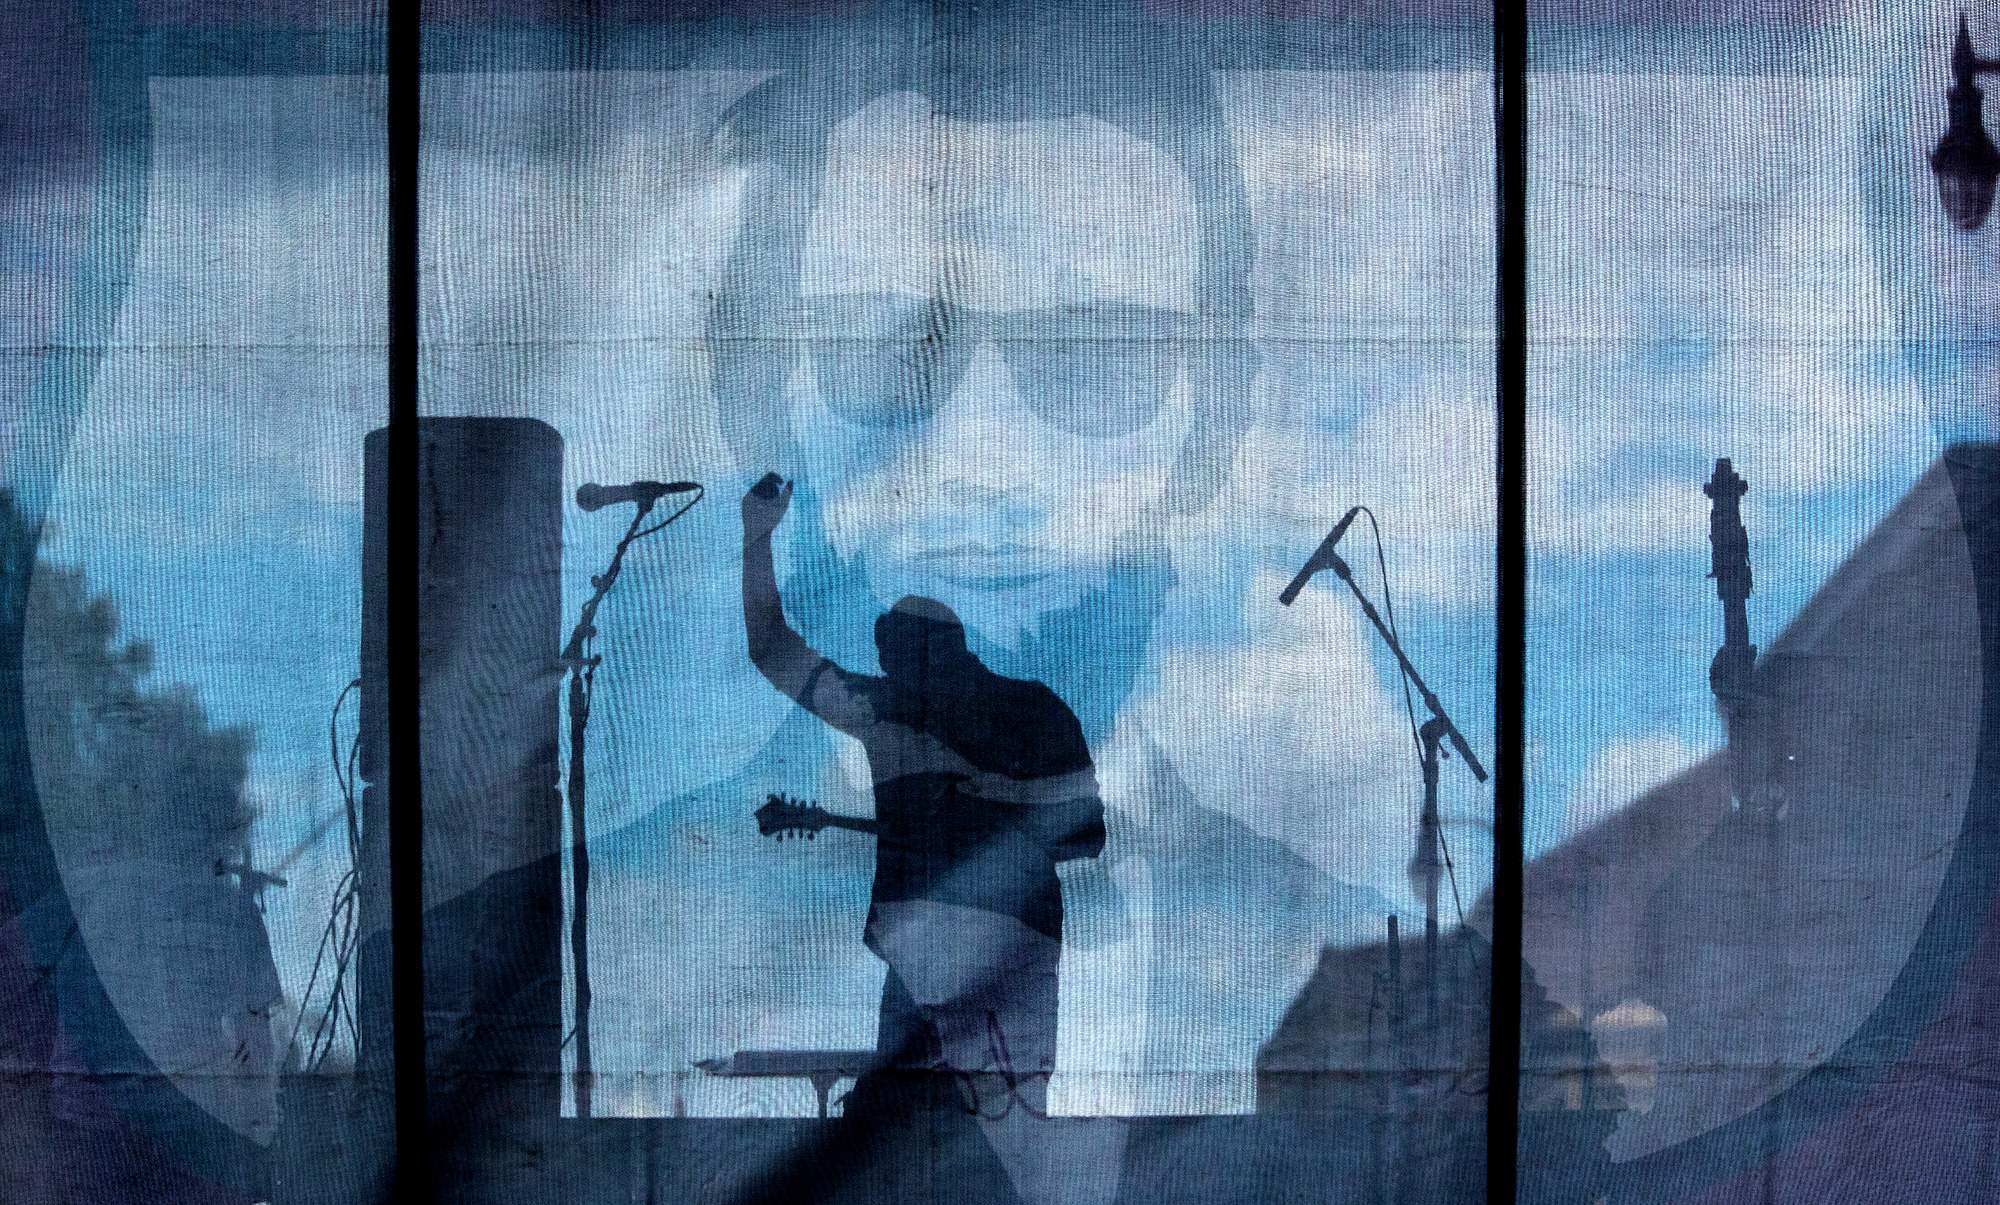 Seen through the stage backdrop of a sunglasses-wearing Abraham Lincoln, Brian Steinhauer performs with Square of the Roots during the Downhome Music Festival Saturday, July 28, 2018. More than two dozen bands performed during the two day event in downtown Springfield. [Ted Schurter/The State Journal-Register]